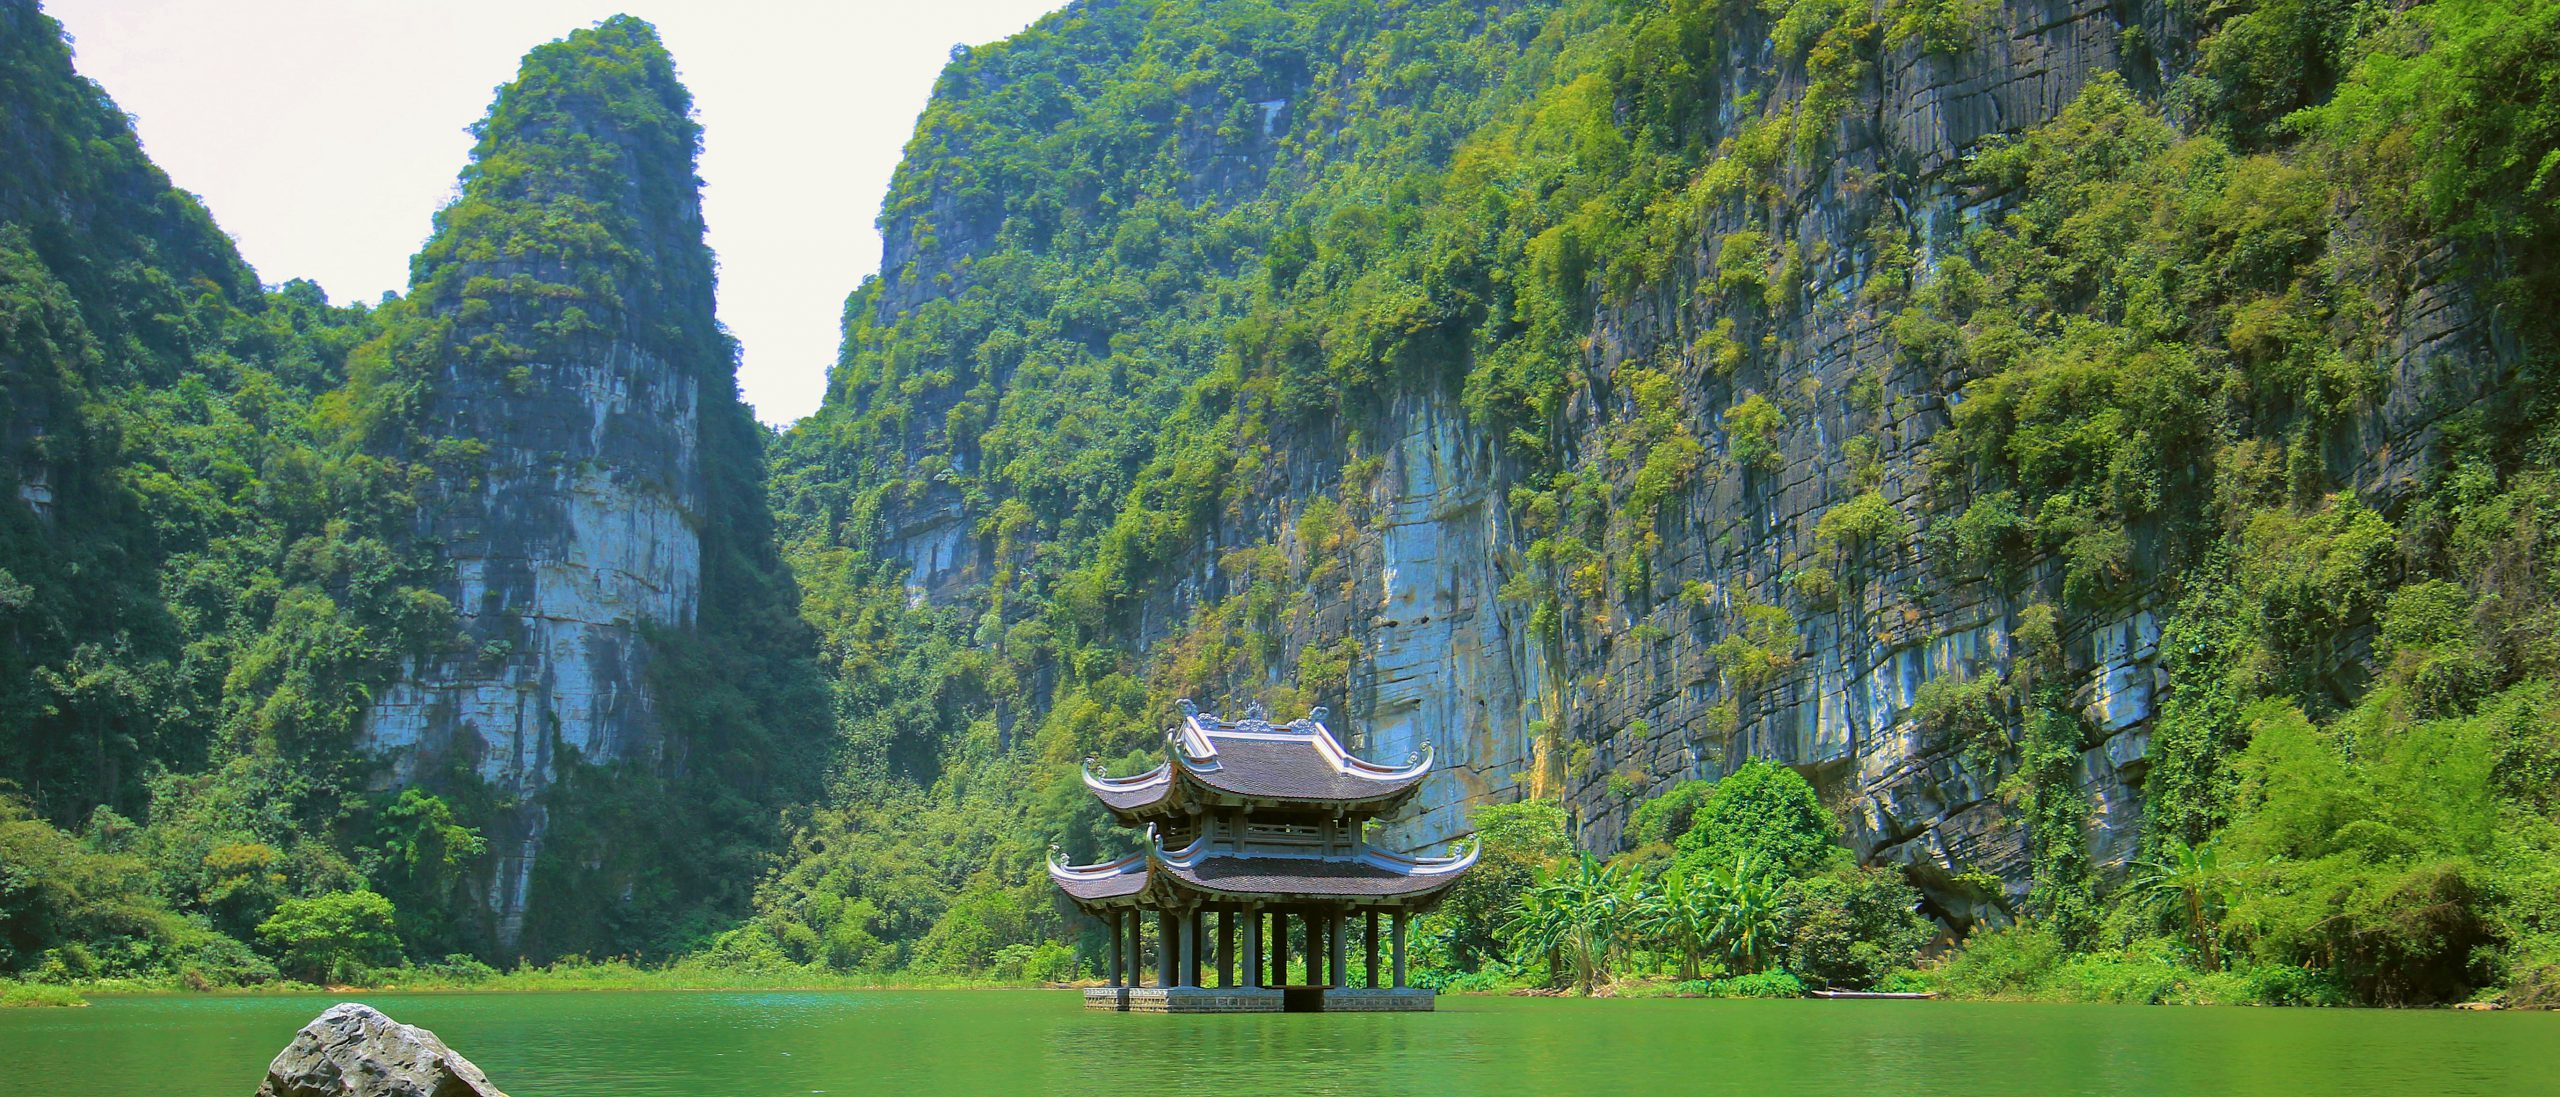 500px-photo-id-252990249-located-in-the-complex-of-trang-an-ninh-binh-vu-lam-archaeological-site-is-a-tourist-attraction-of-attraction-this-was-where-the-tran-emperors-set-up-camps-to-consolida